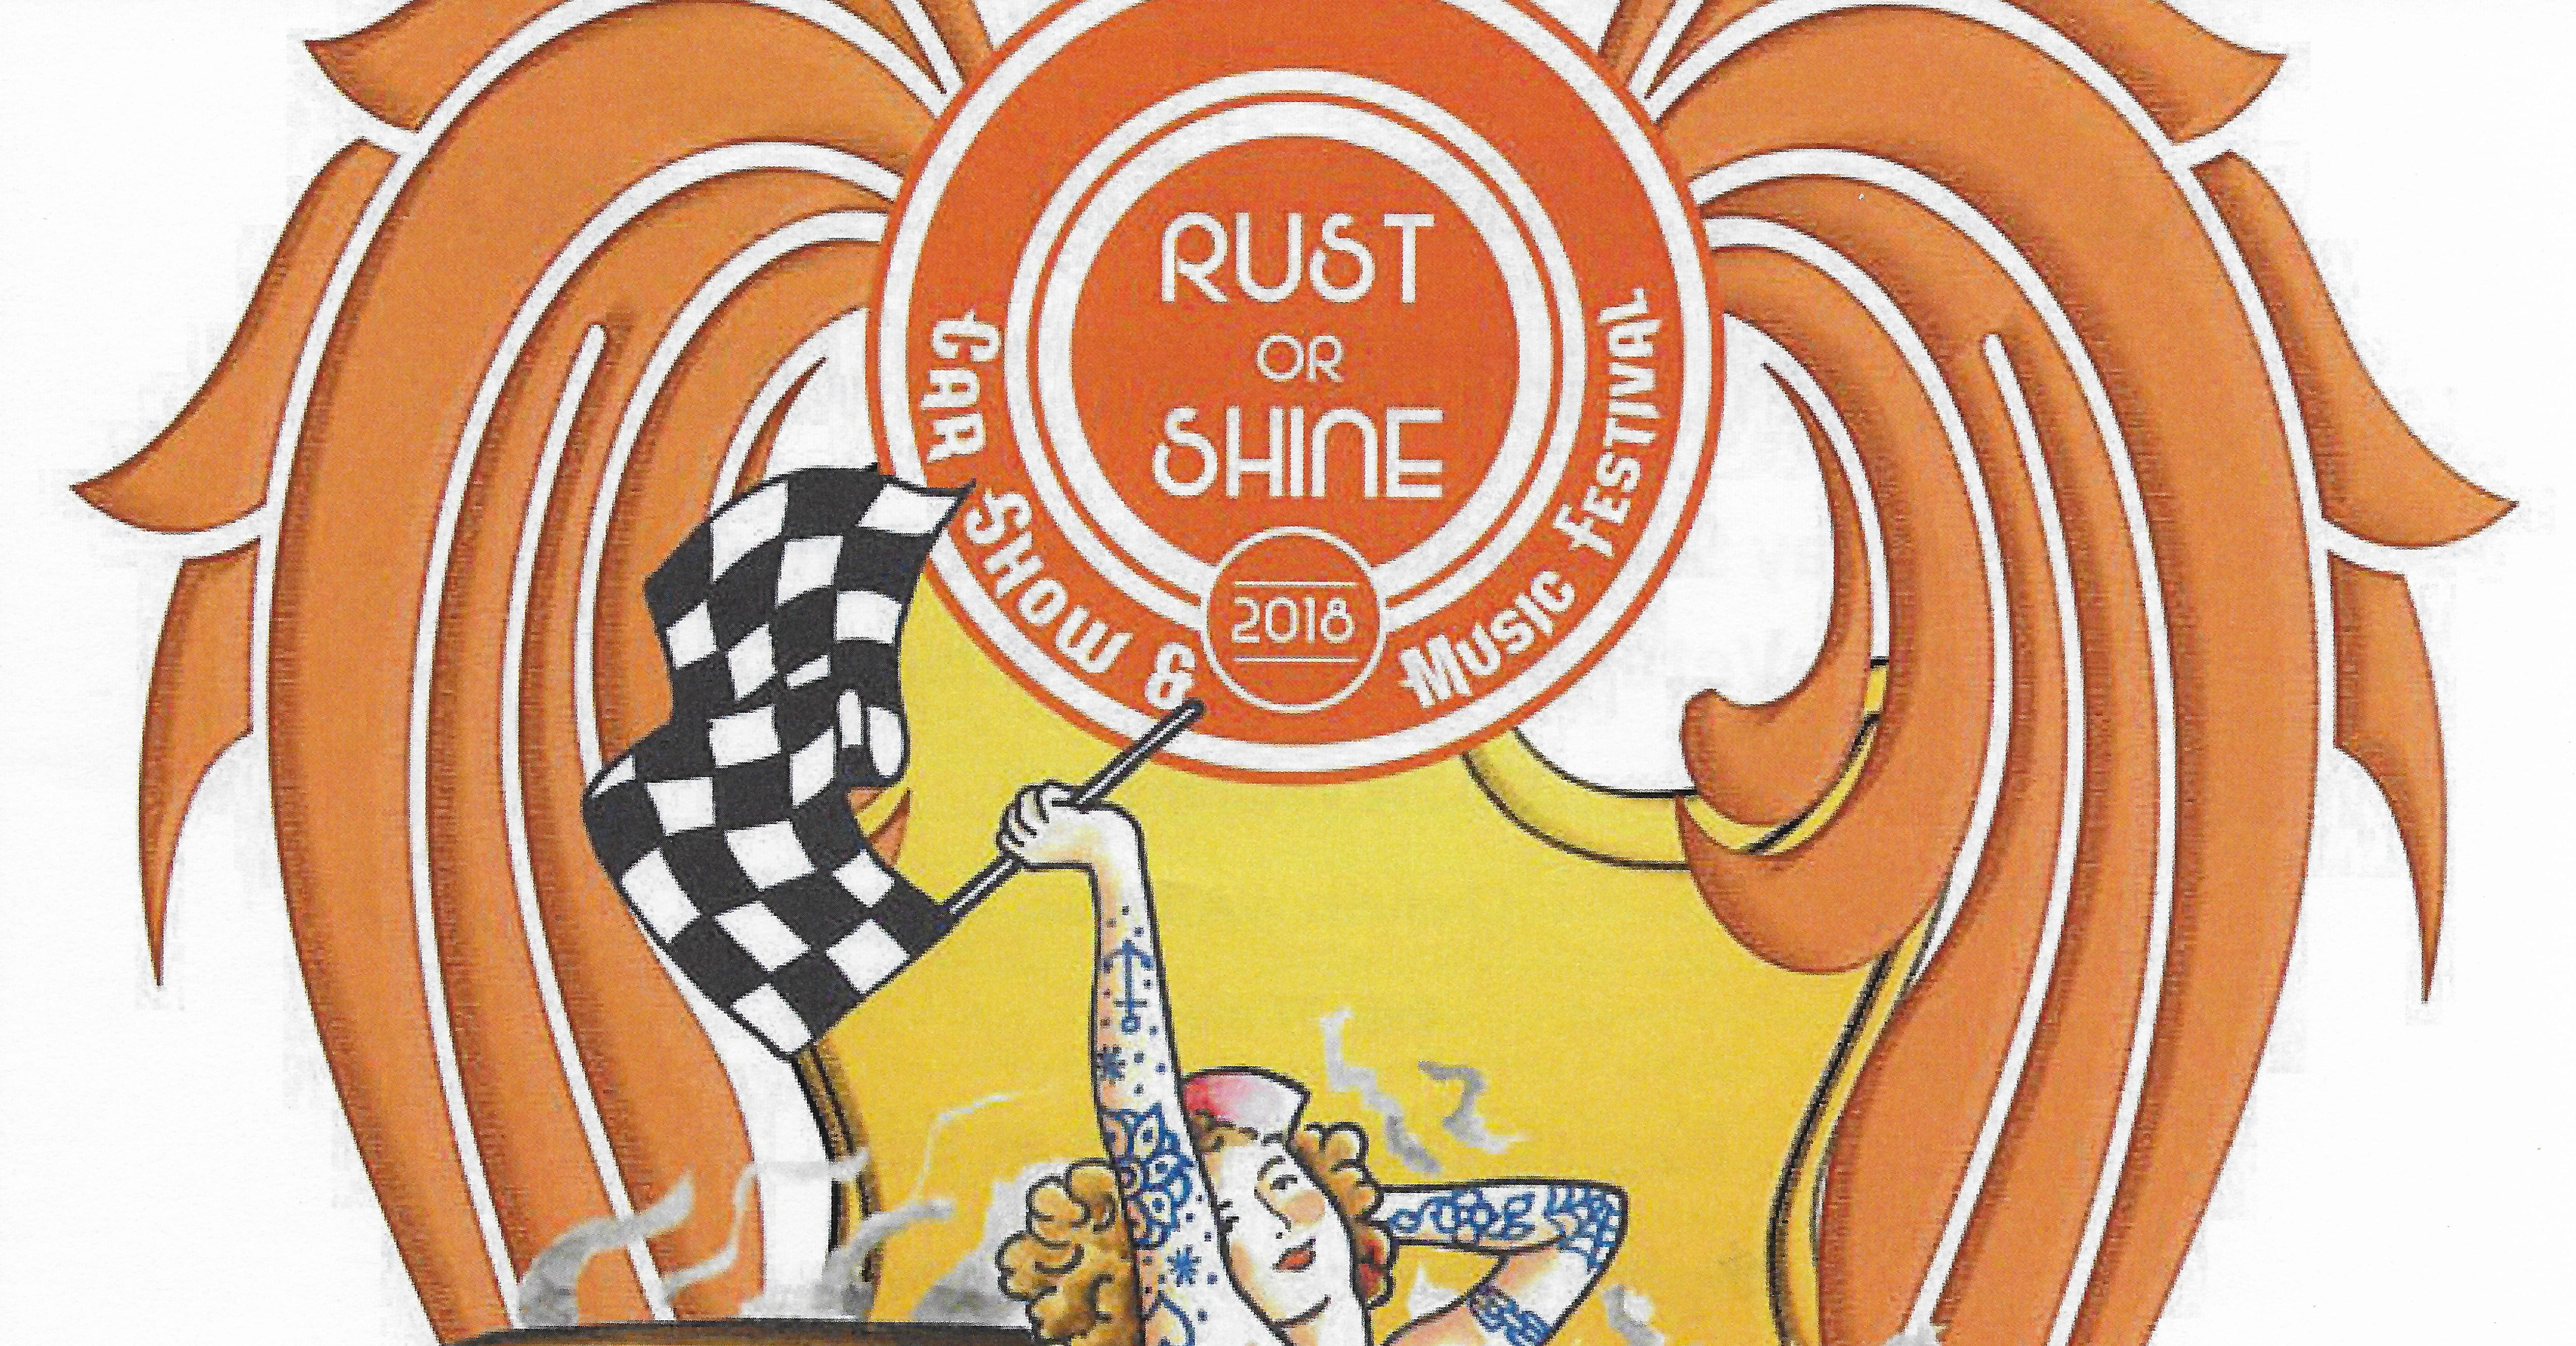 Rust or Shine Car Show & Music Festival - September 2nd